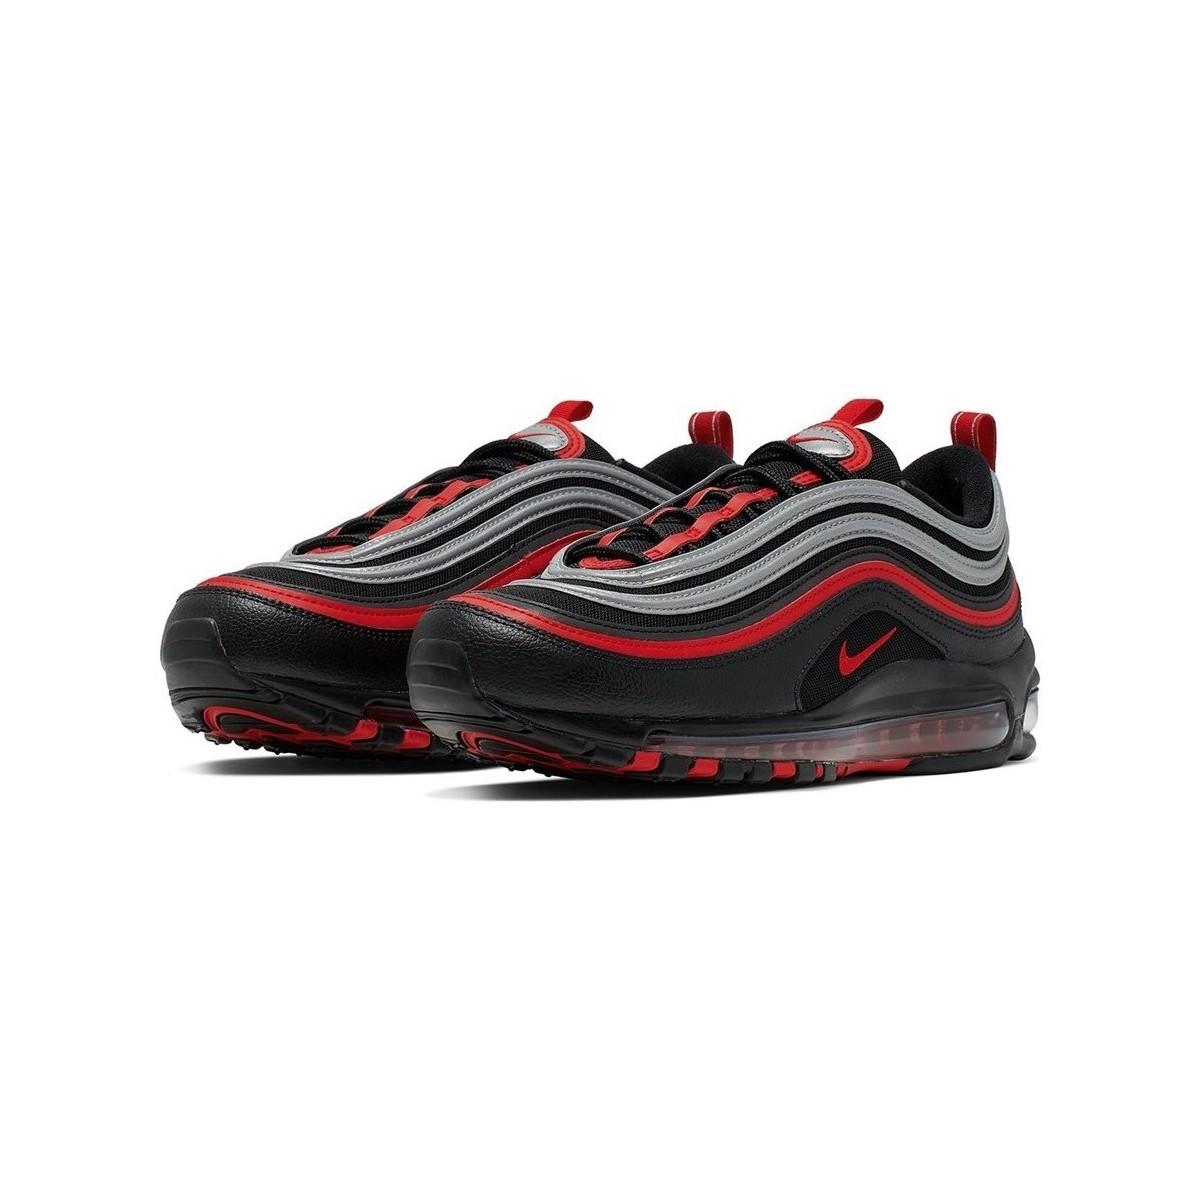 Air Max 97 Chaussures Nike pour homme